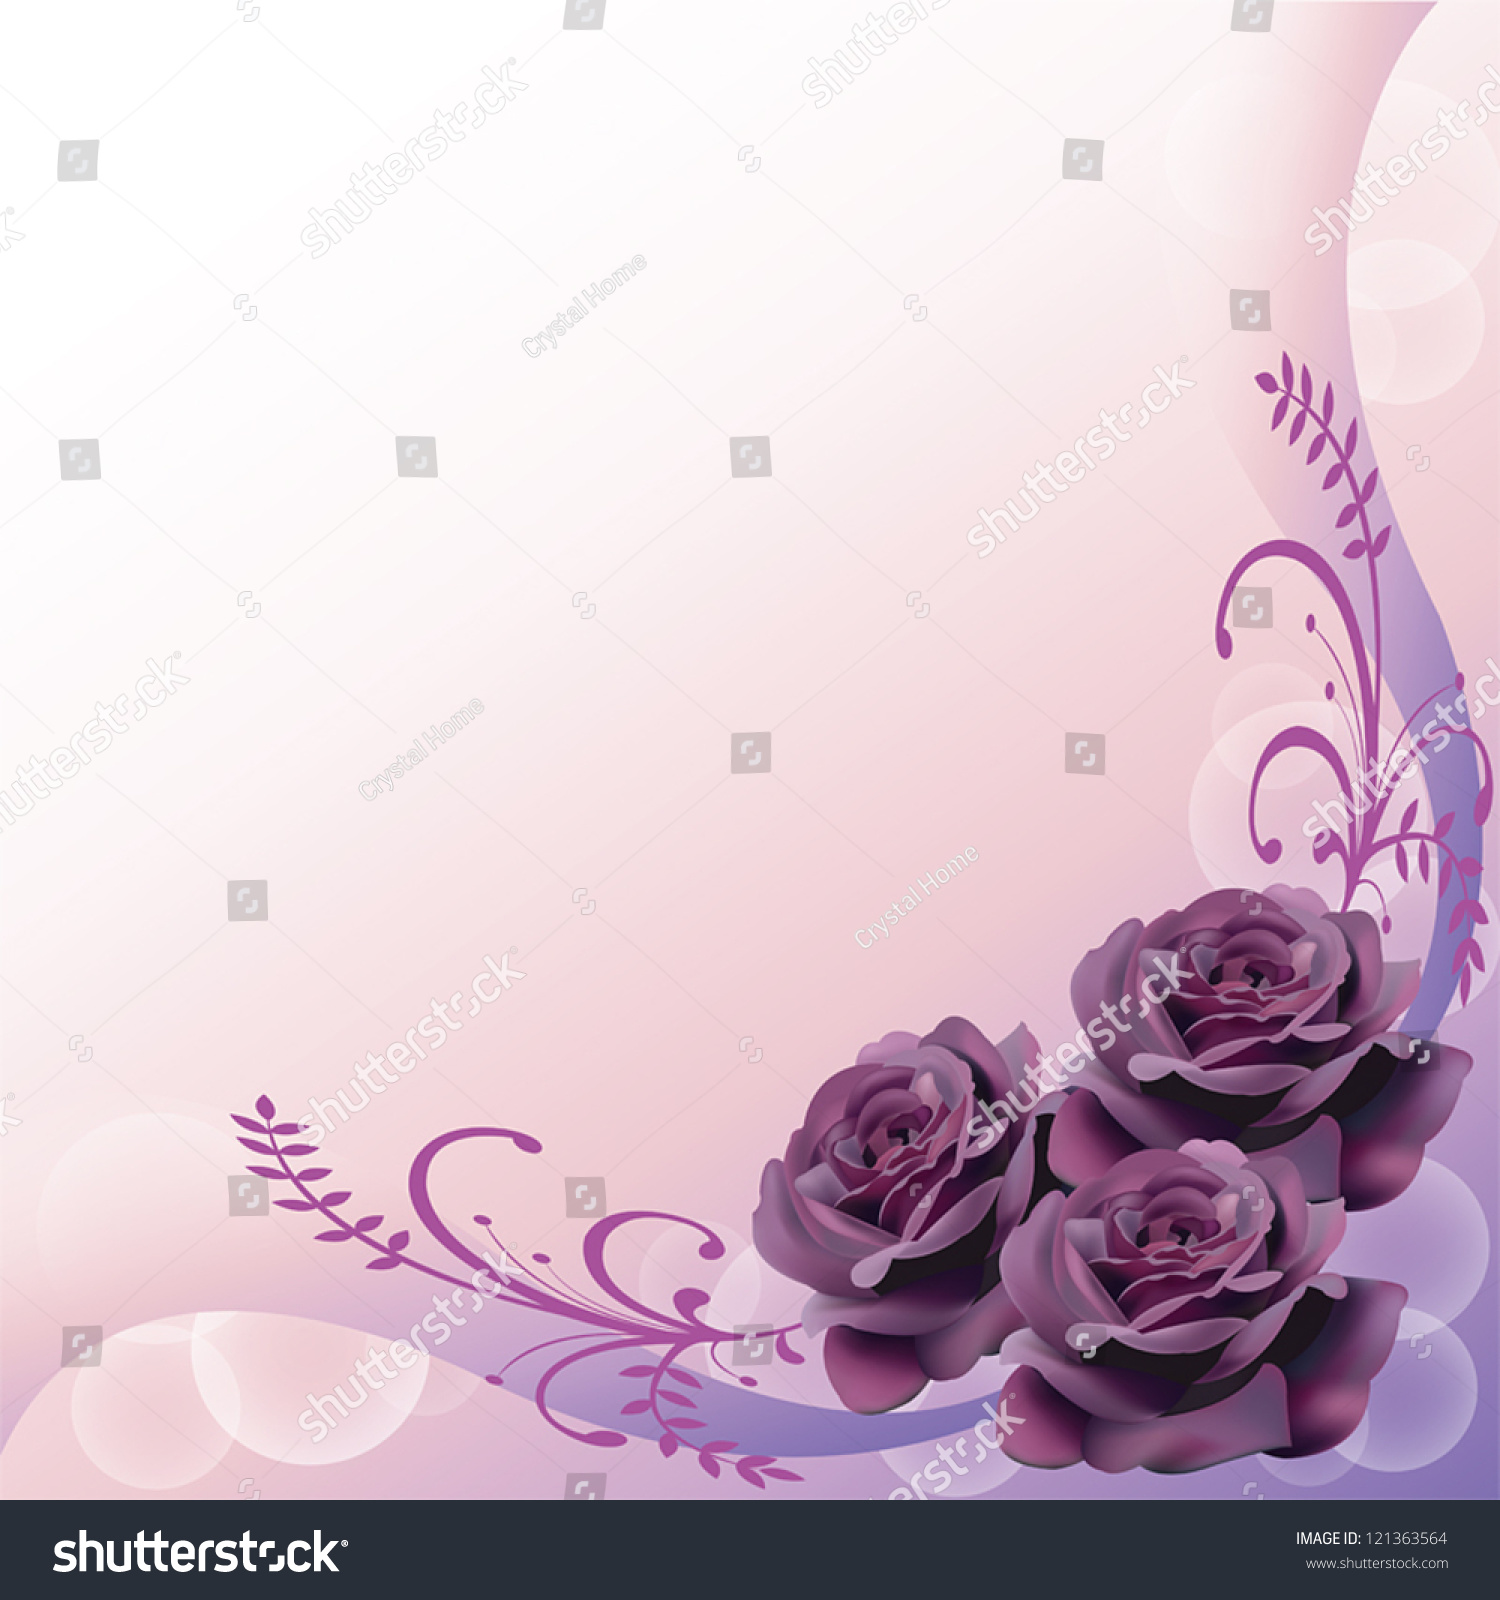 Purple Invitation Background Pictures to Pin on Pinterest ...